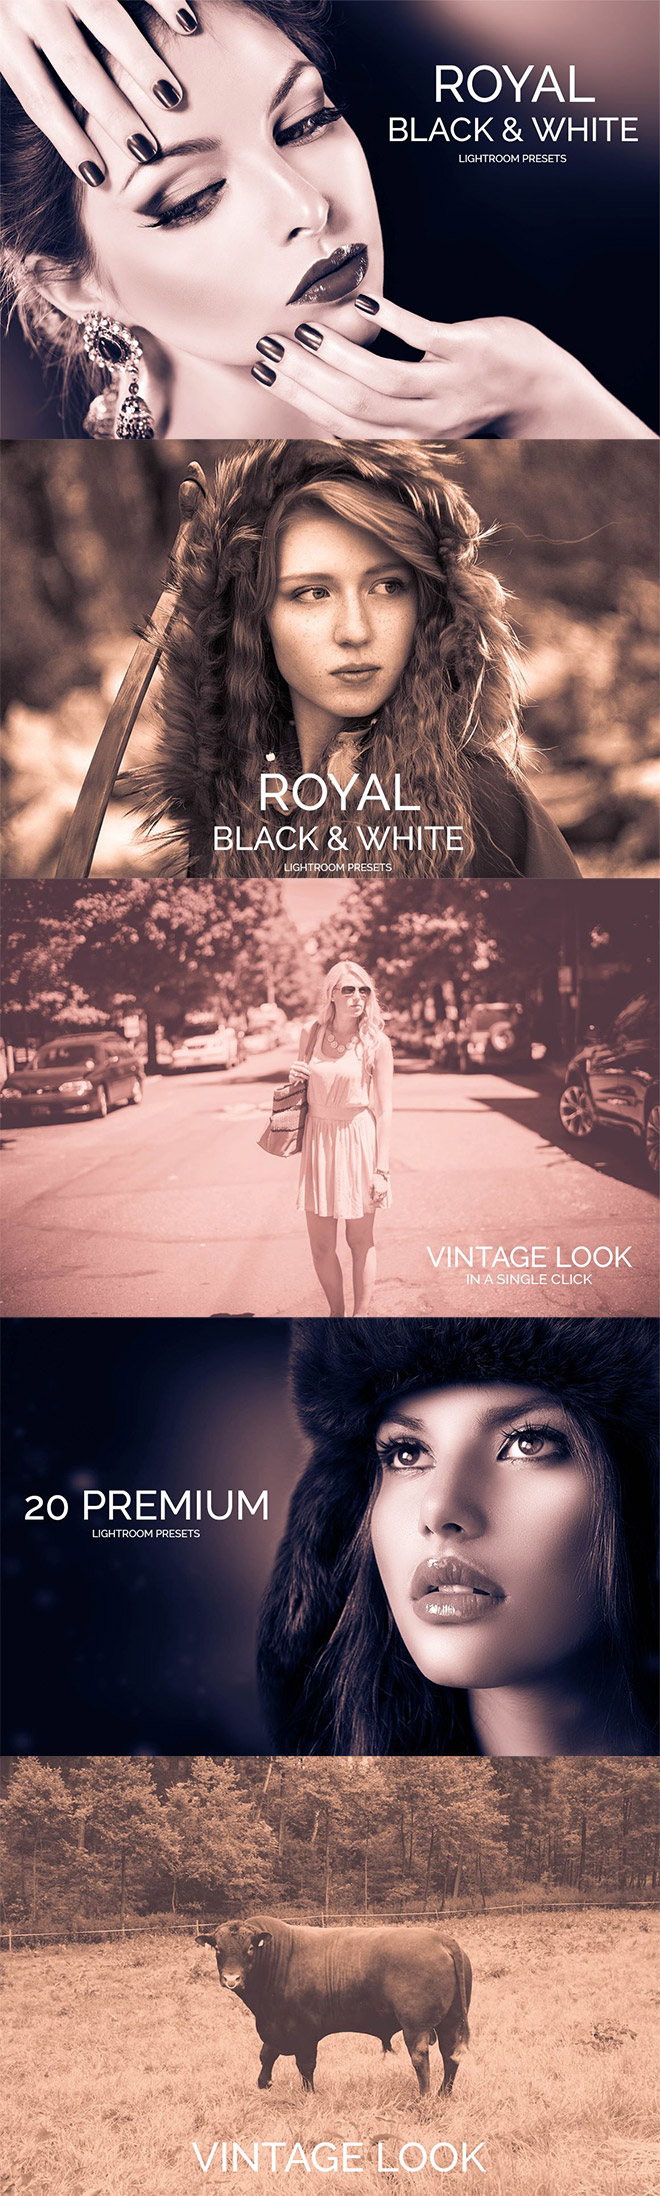 Royal Black & White Lightroom Presets